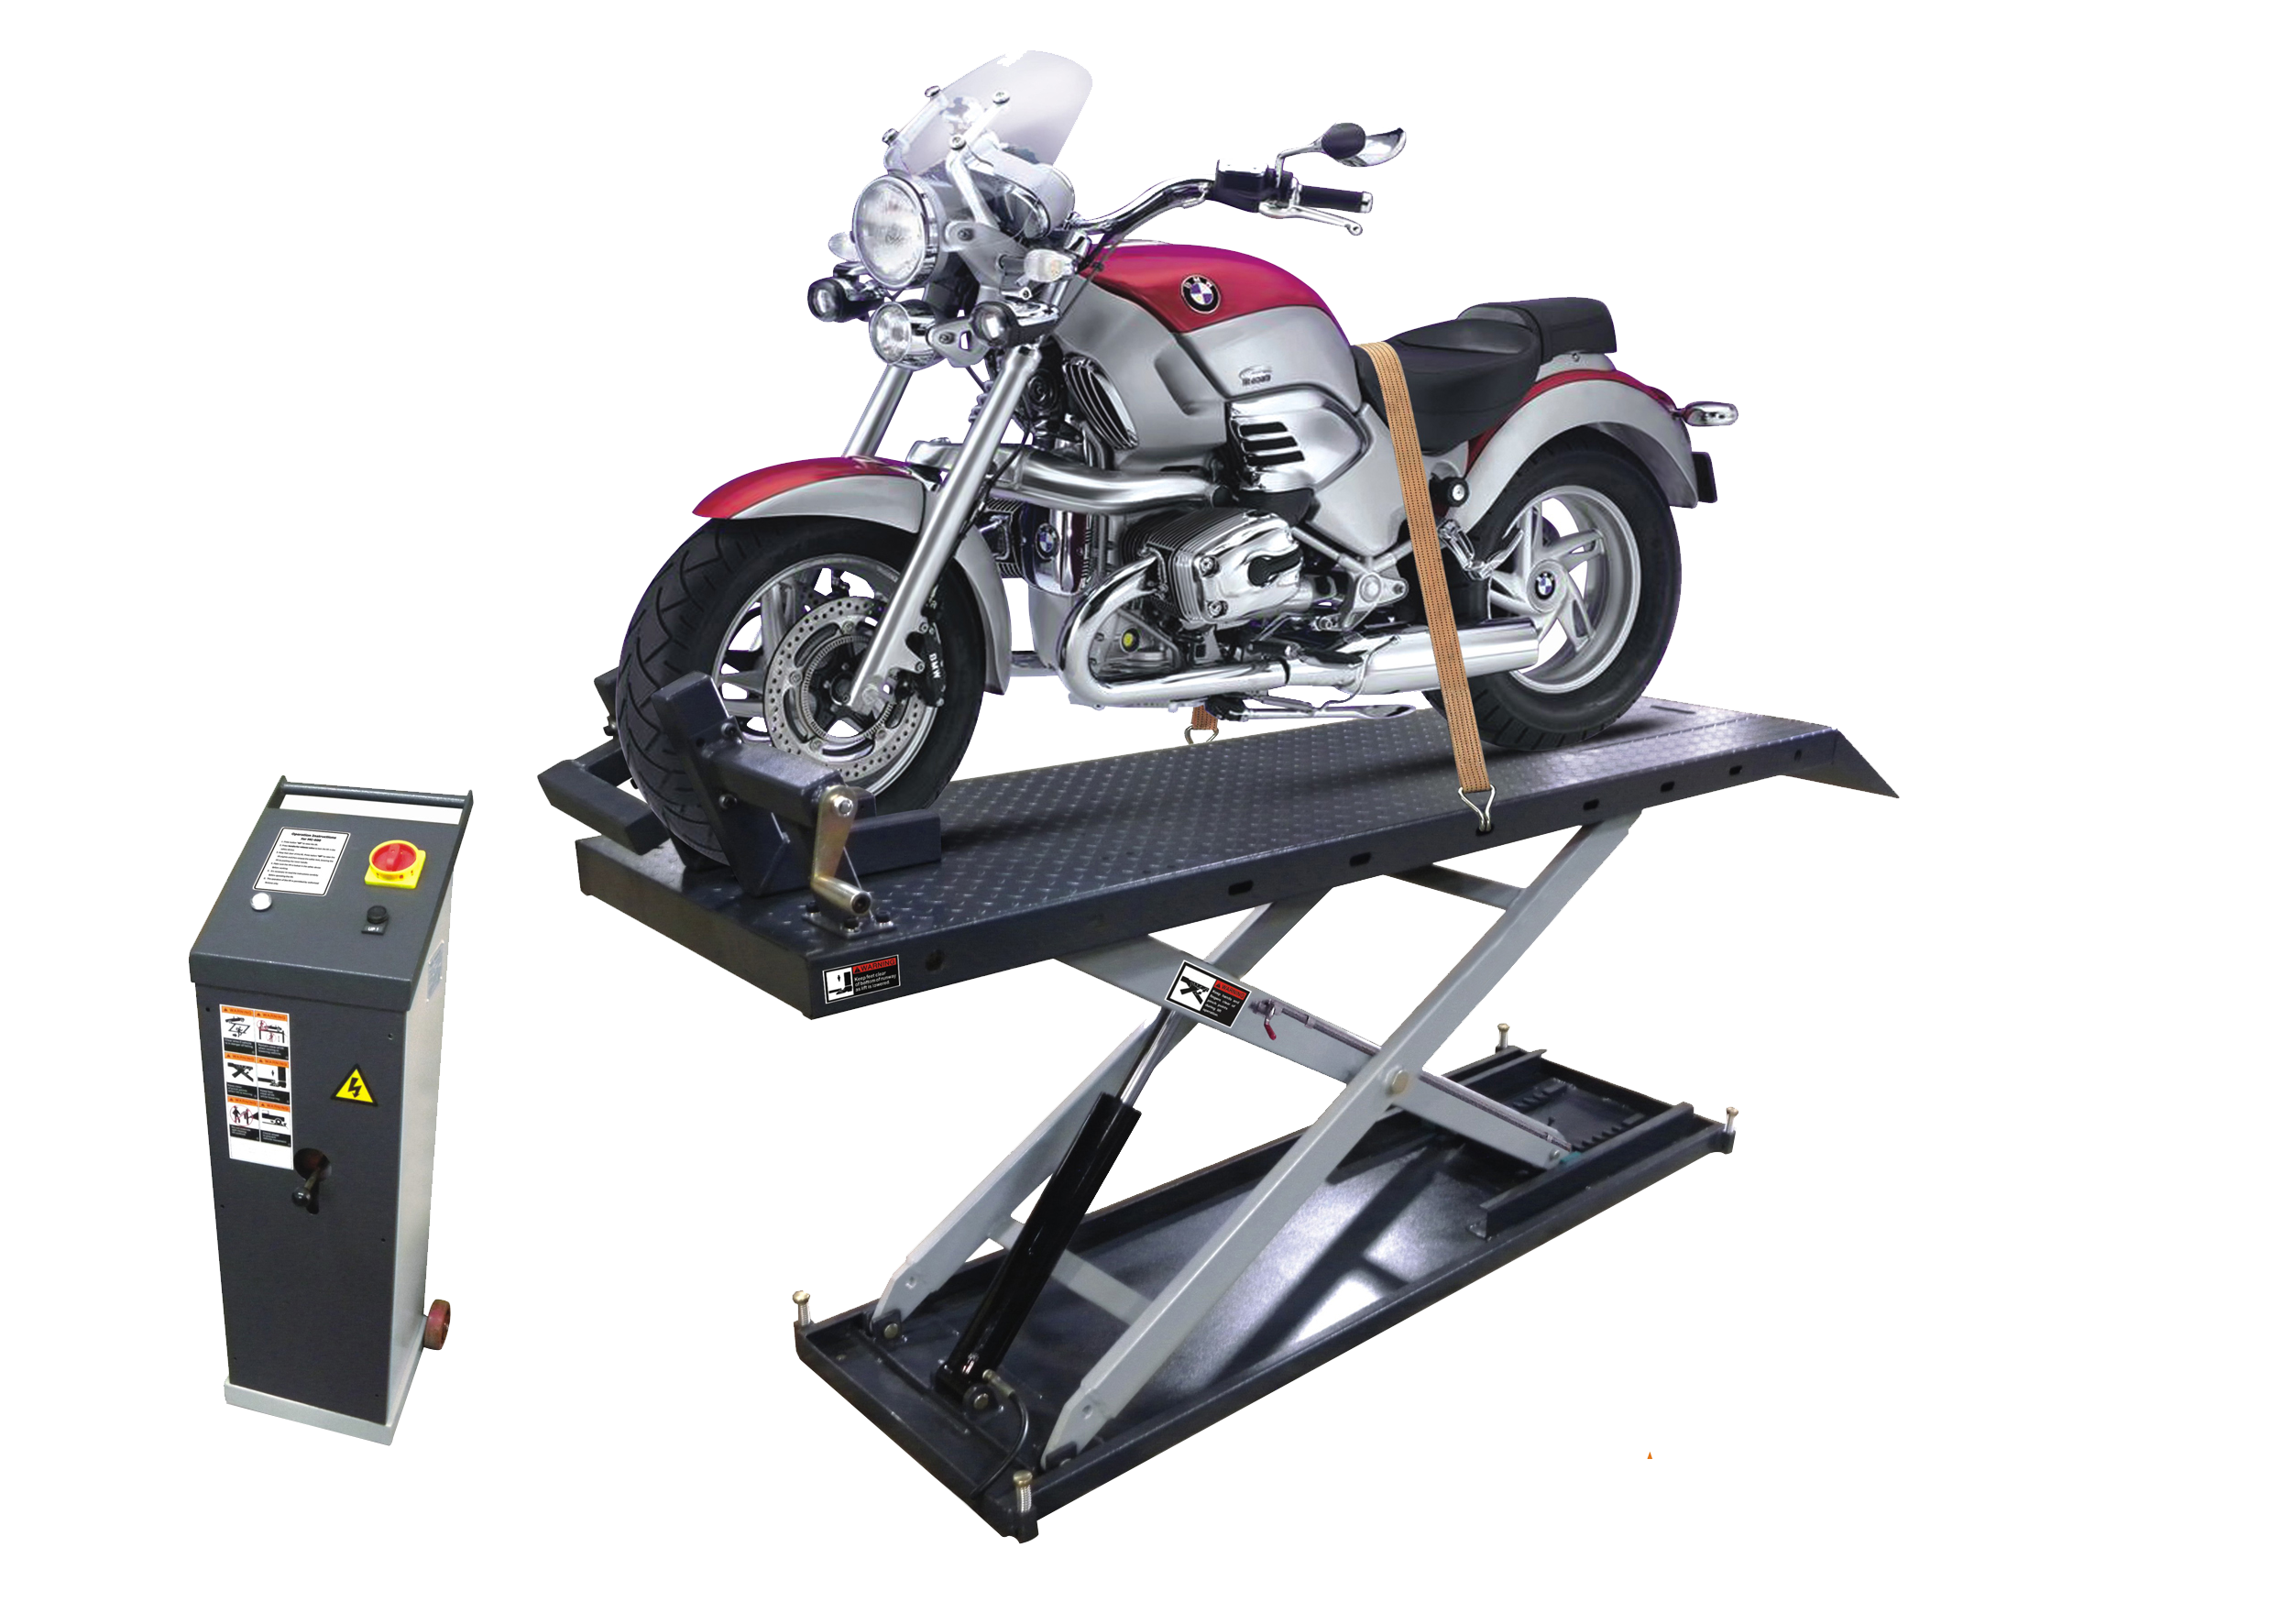 lift-king-mc-600-motor-cycle-atv-quad-bike-lift-01